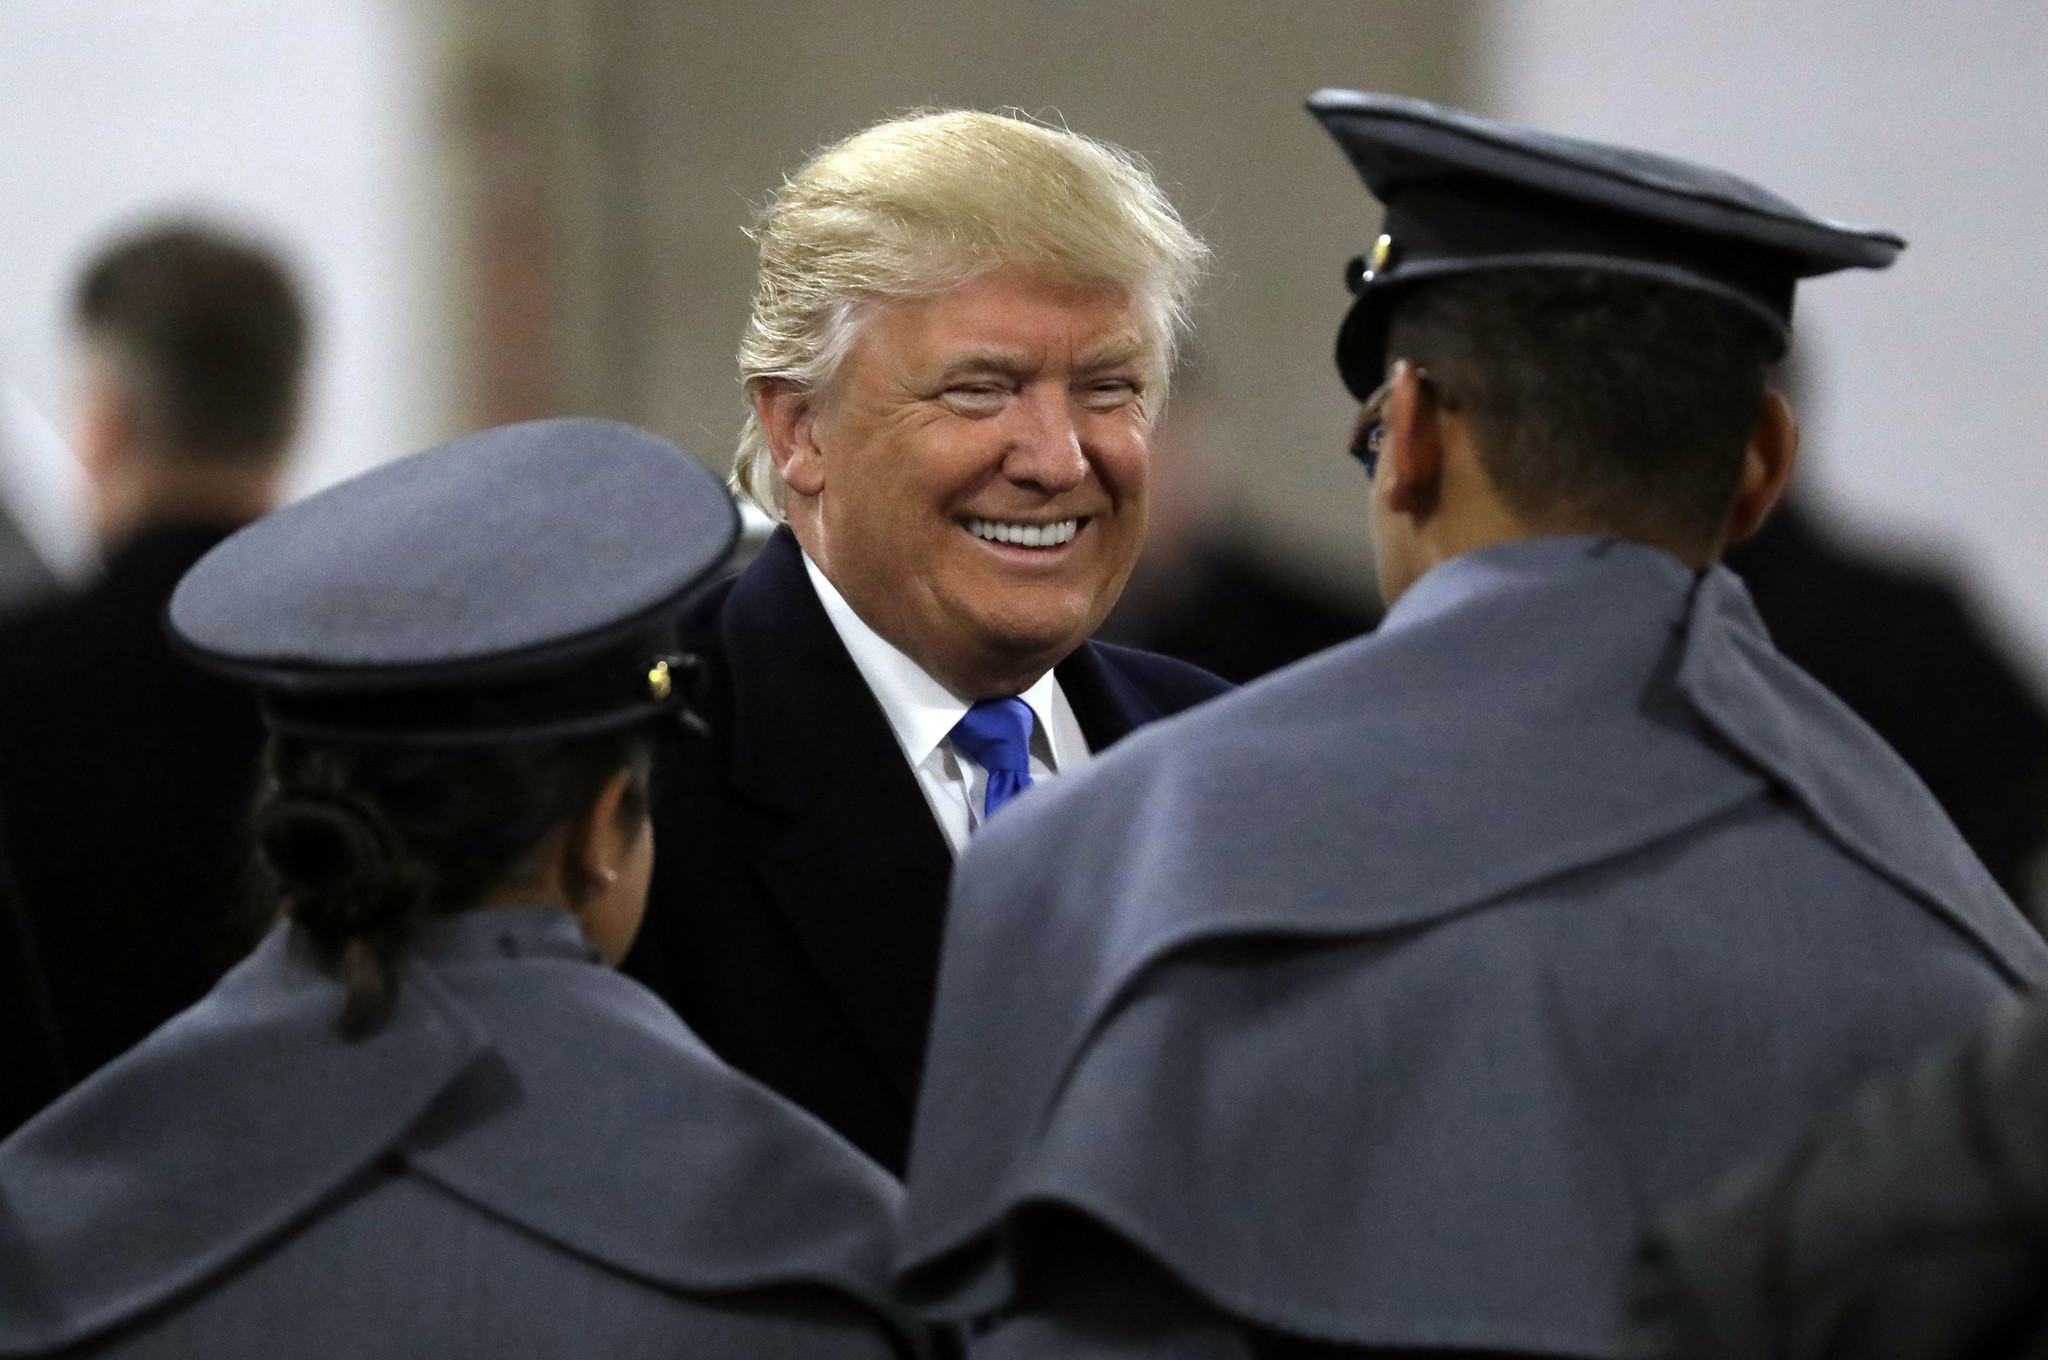 Speaking Loudly and Carrying a Big Stick: Trump's Military Increase Isn't Sustainable